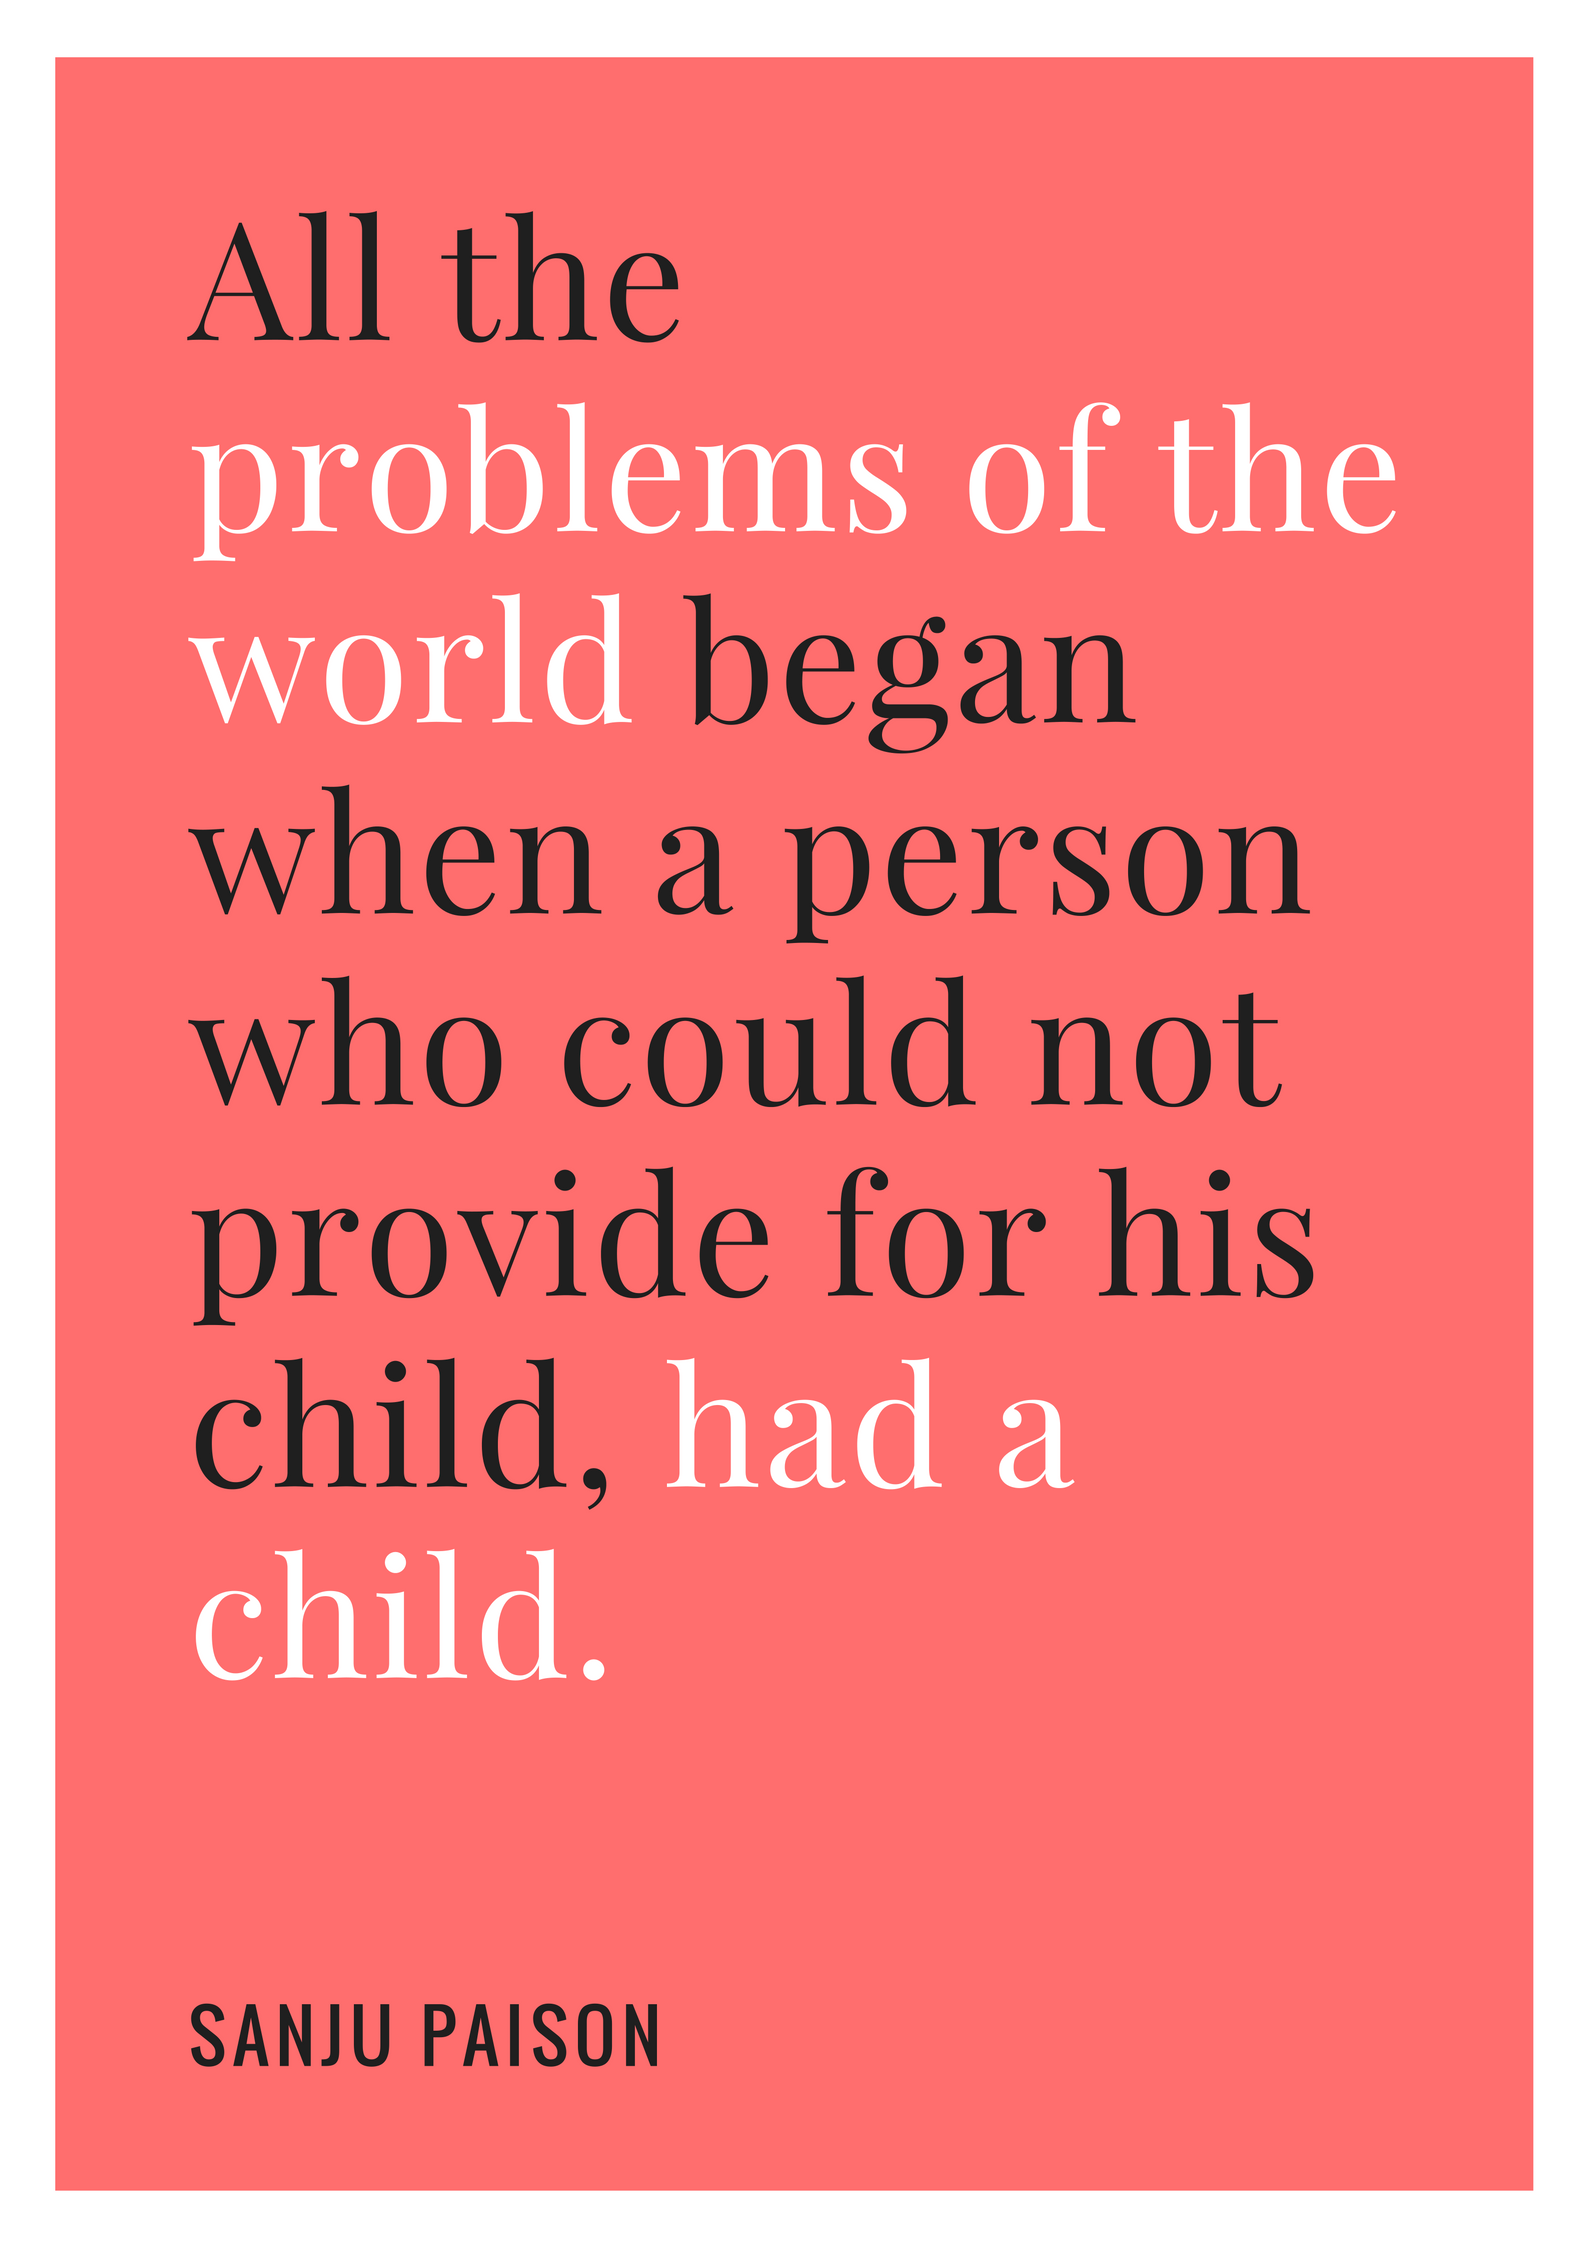 All the problems of the world began when a person who could not provide for his child, had a child. – Sanju Paison